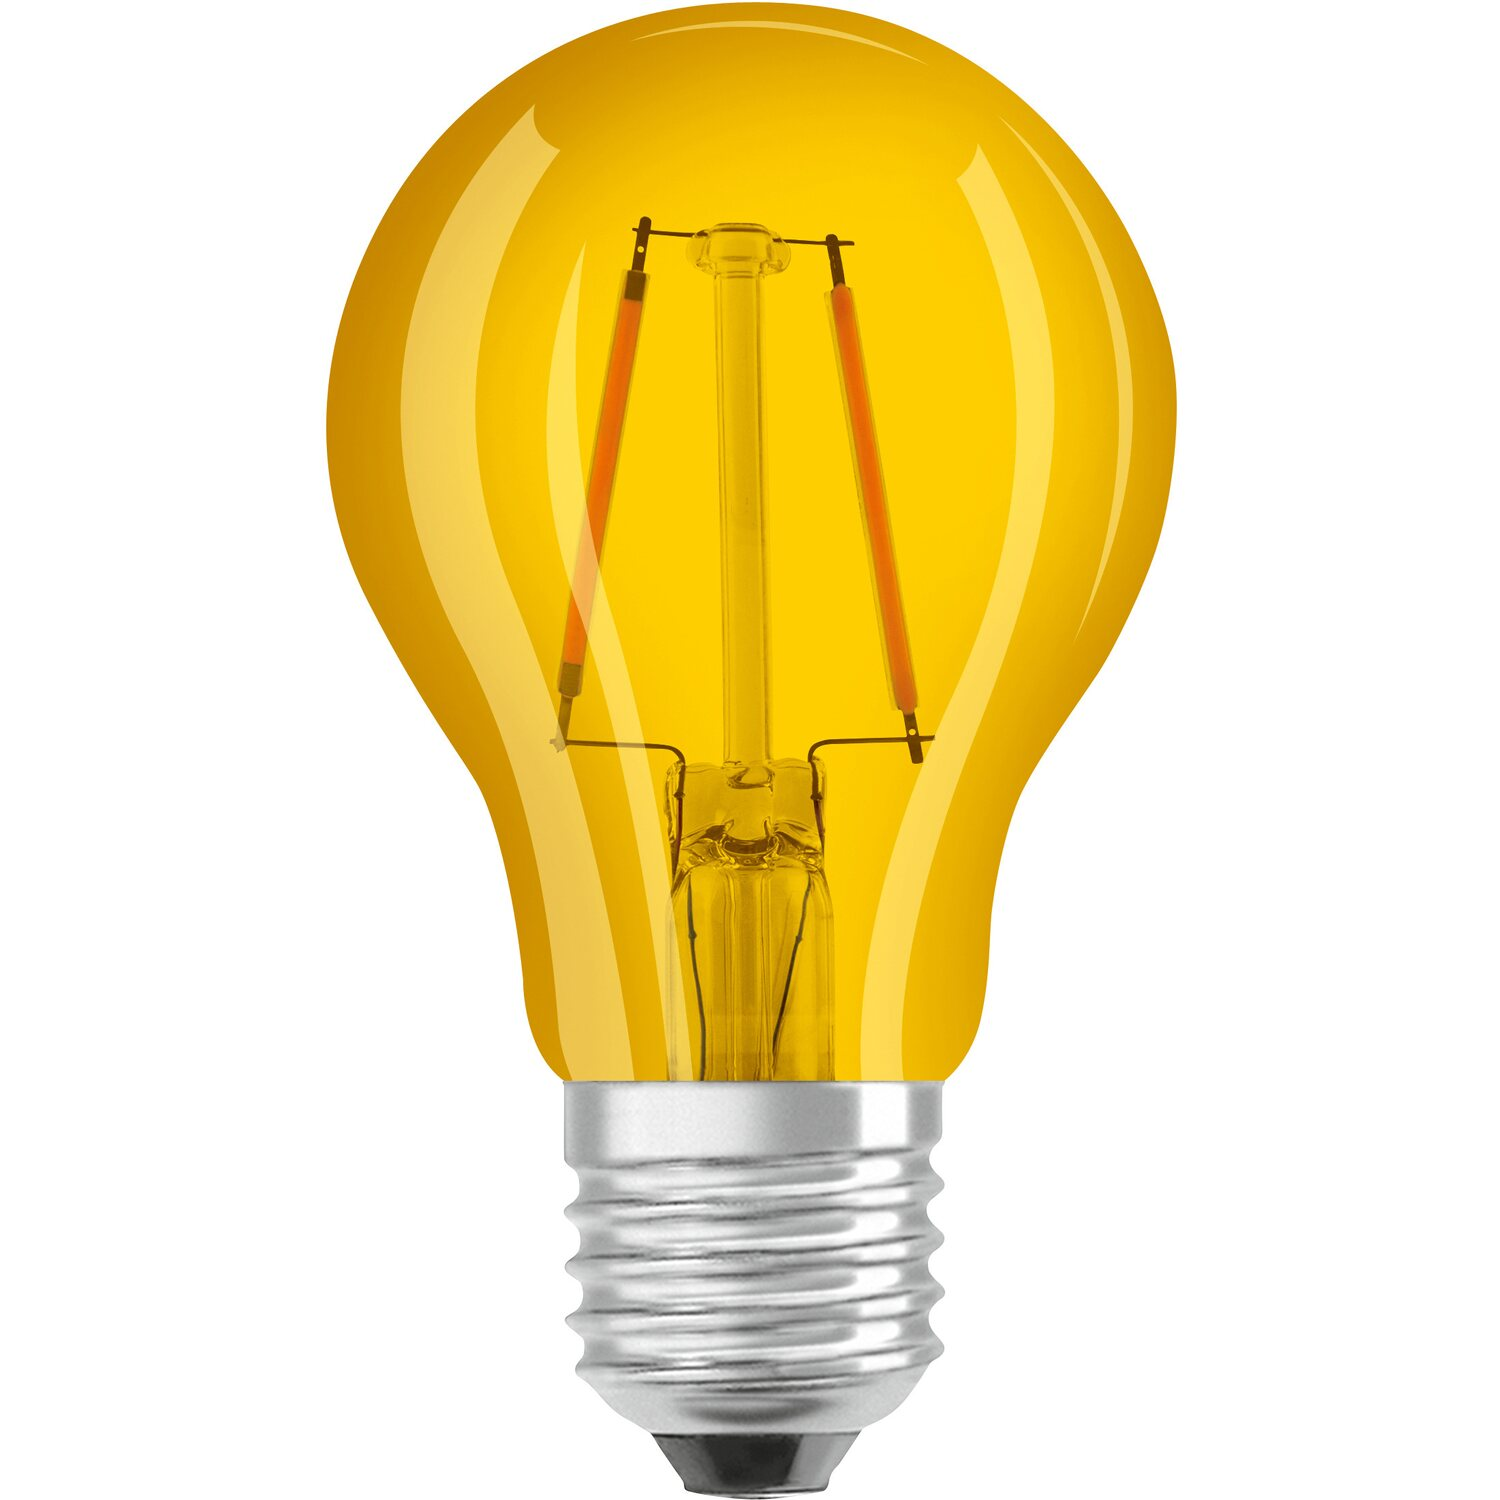 Osram lampadina led decor goccia e27 giallo acquista da obi for Lampadina e27